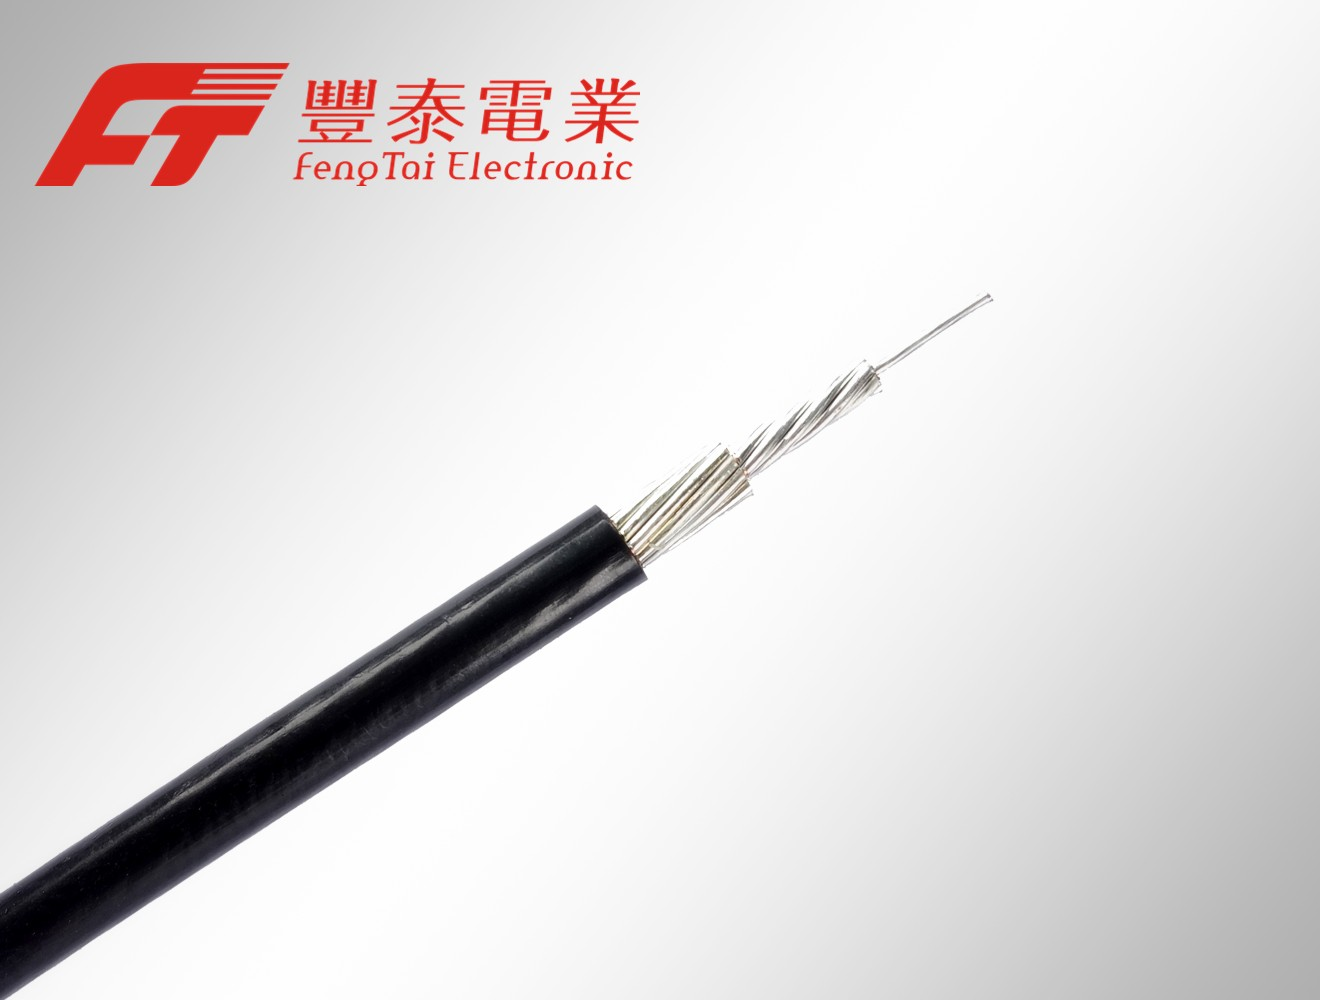 Products | Feng Tai Electronic International Co., Ltd